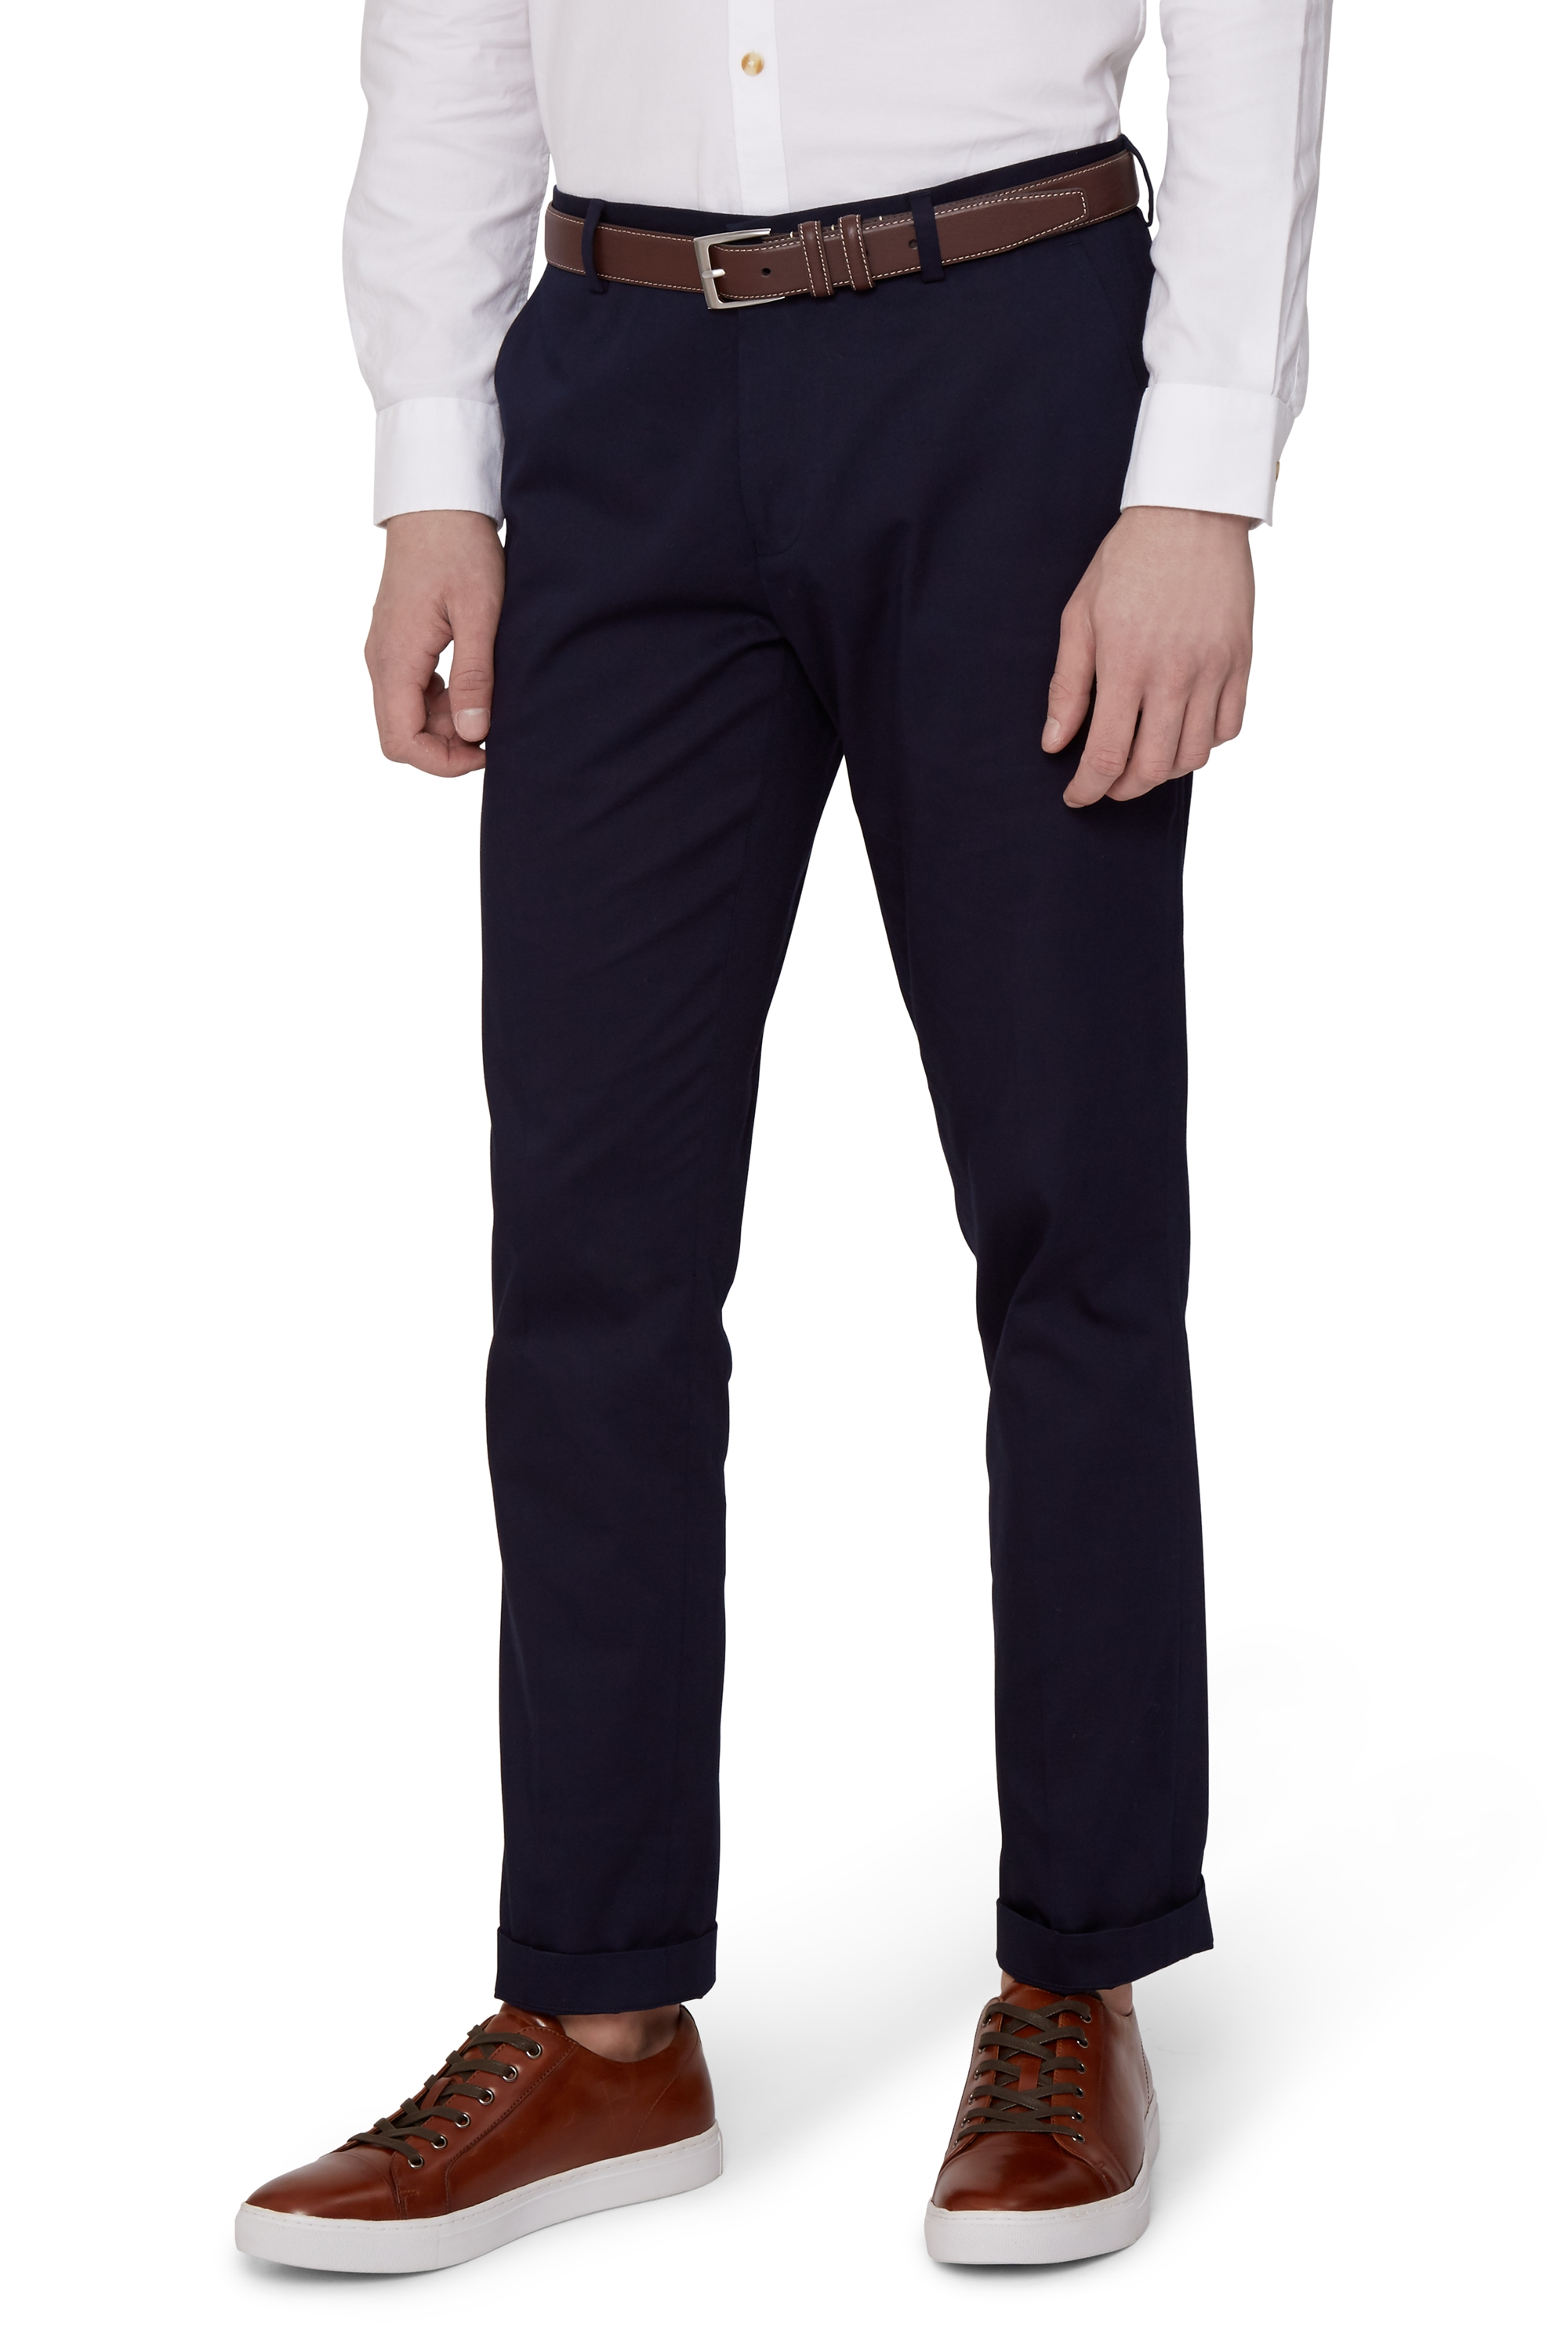 Nicekicks TROUSERS - Casual trousers CHINOS & COTTON Discount New Cheap Sale 2018 Newest J5zzn2wc3o